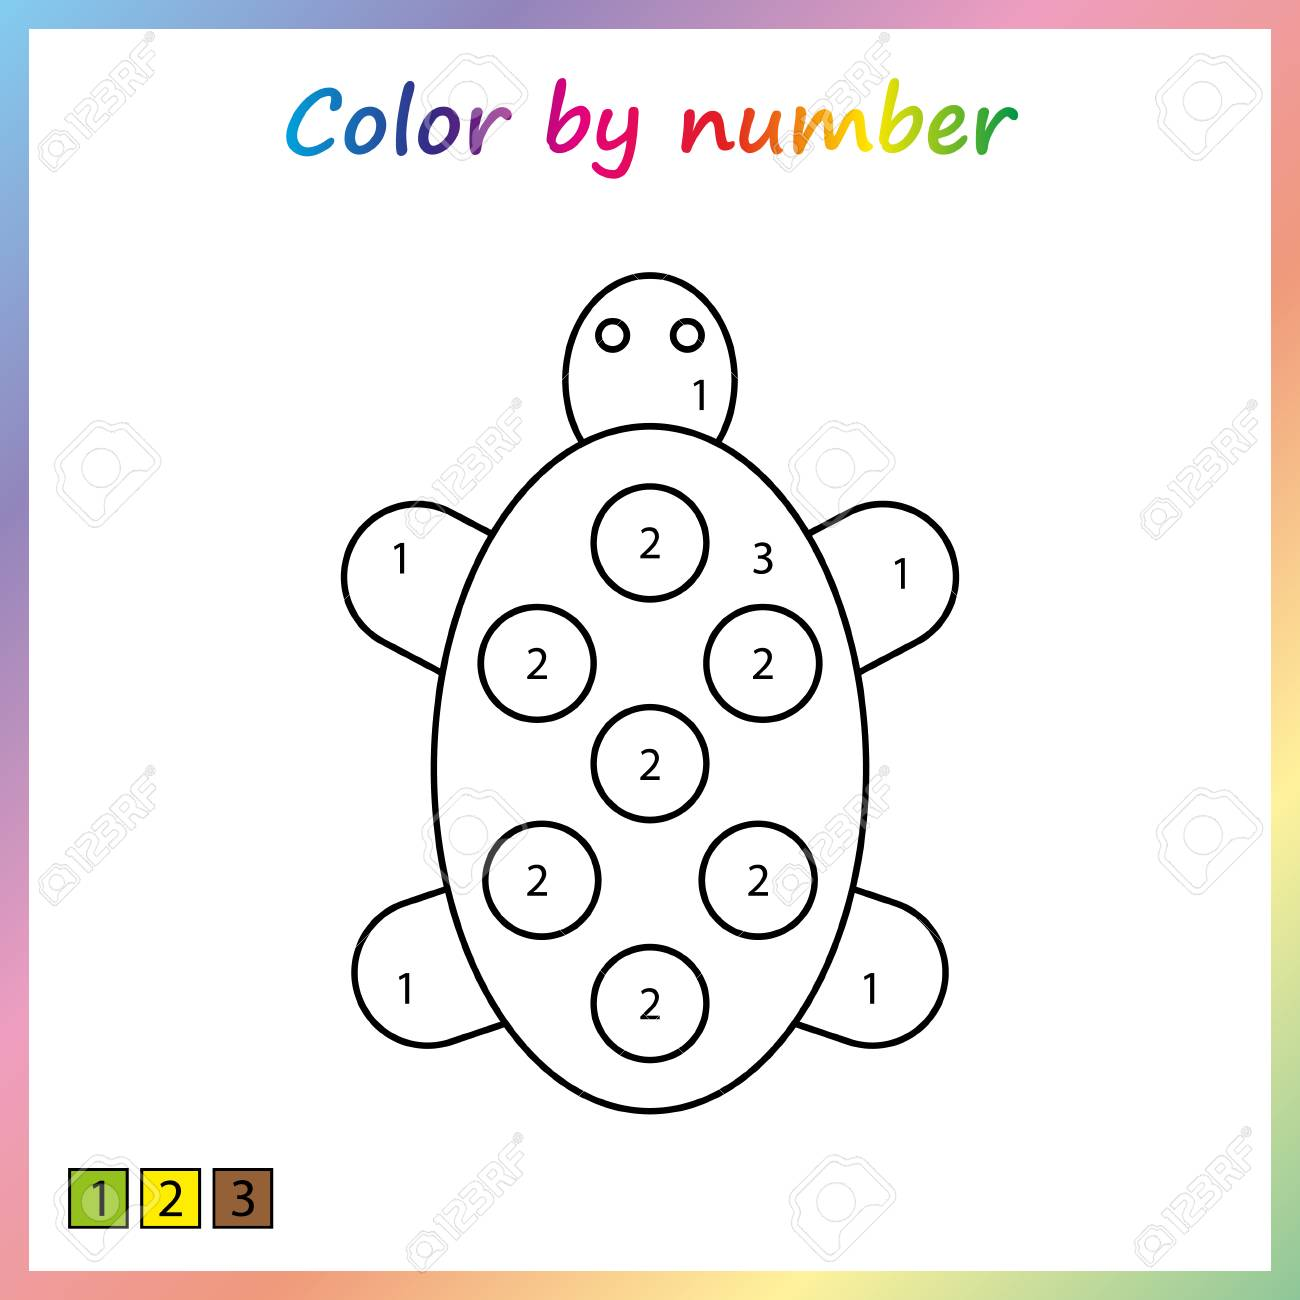 Painting page color by numbers worksheet for education game for preschool kids